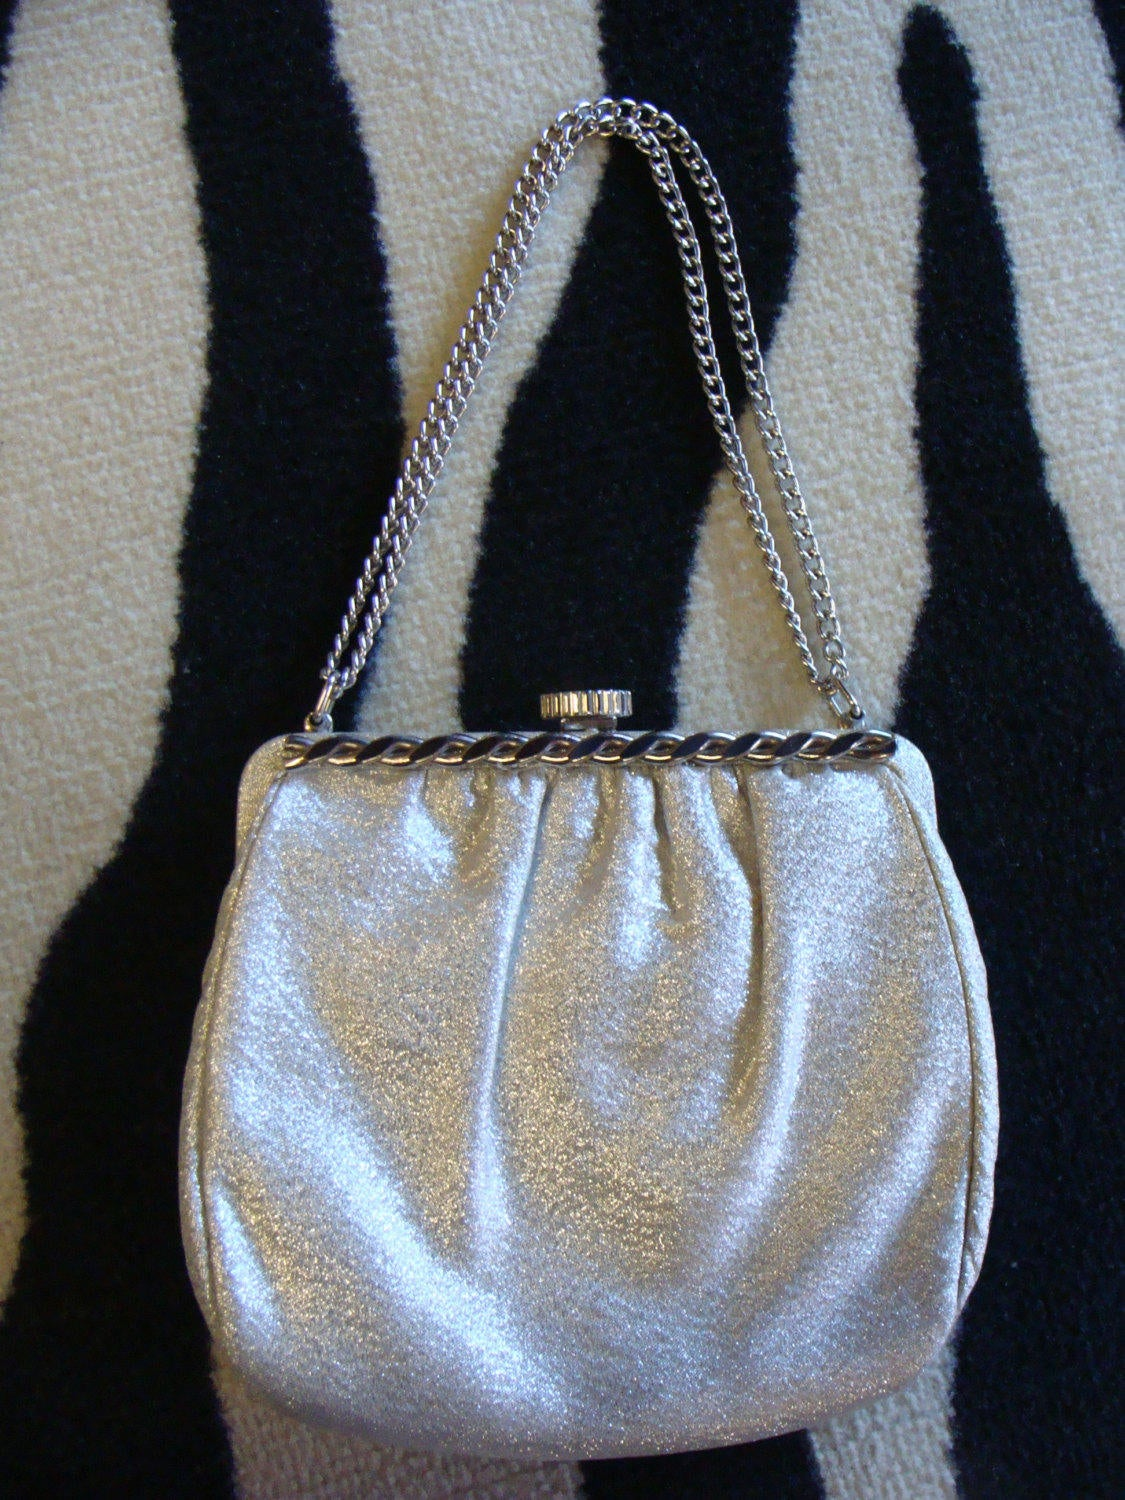 1960's SILVER EVENING BAG purse vintage 60's regency (G2)